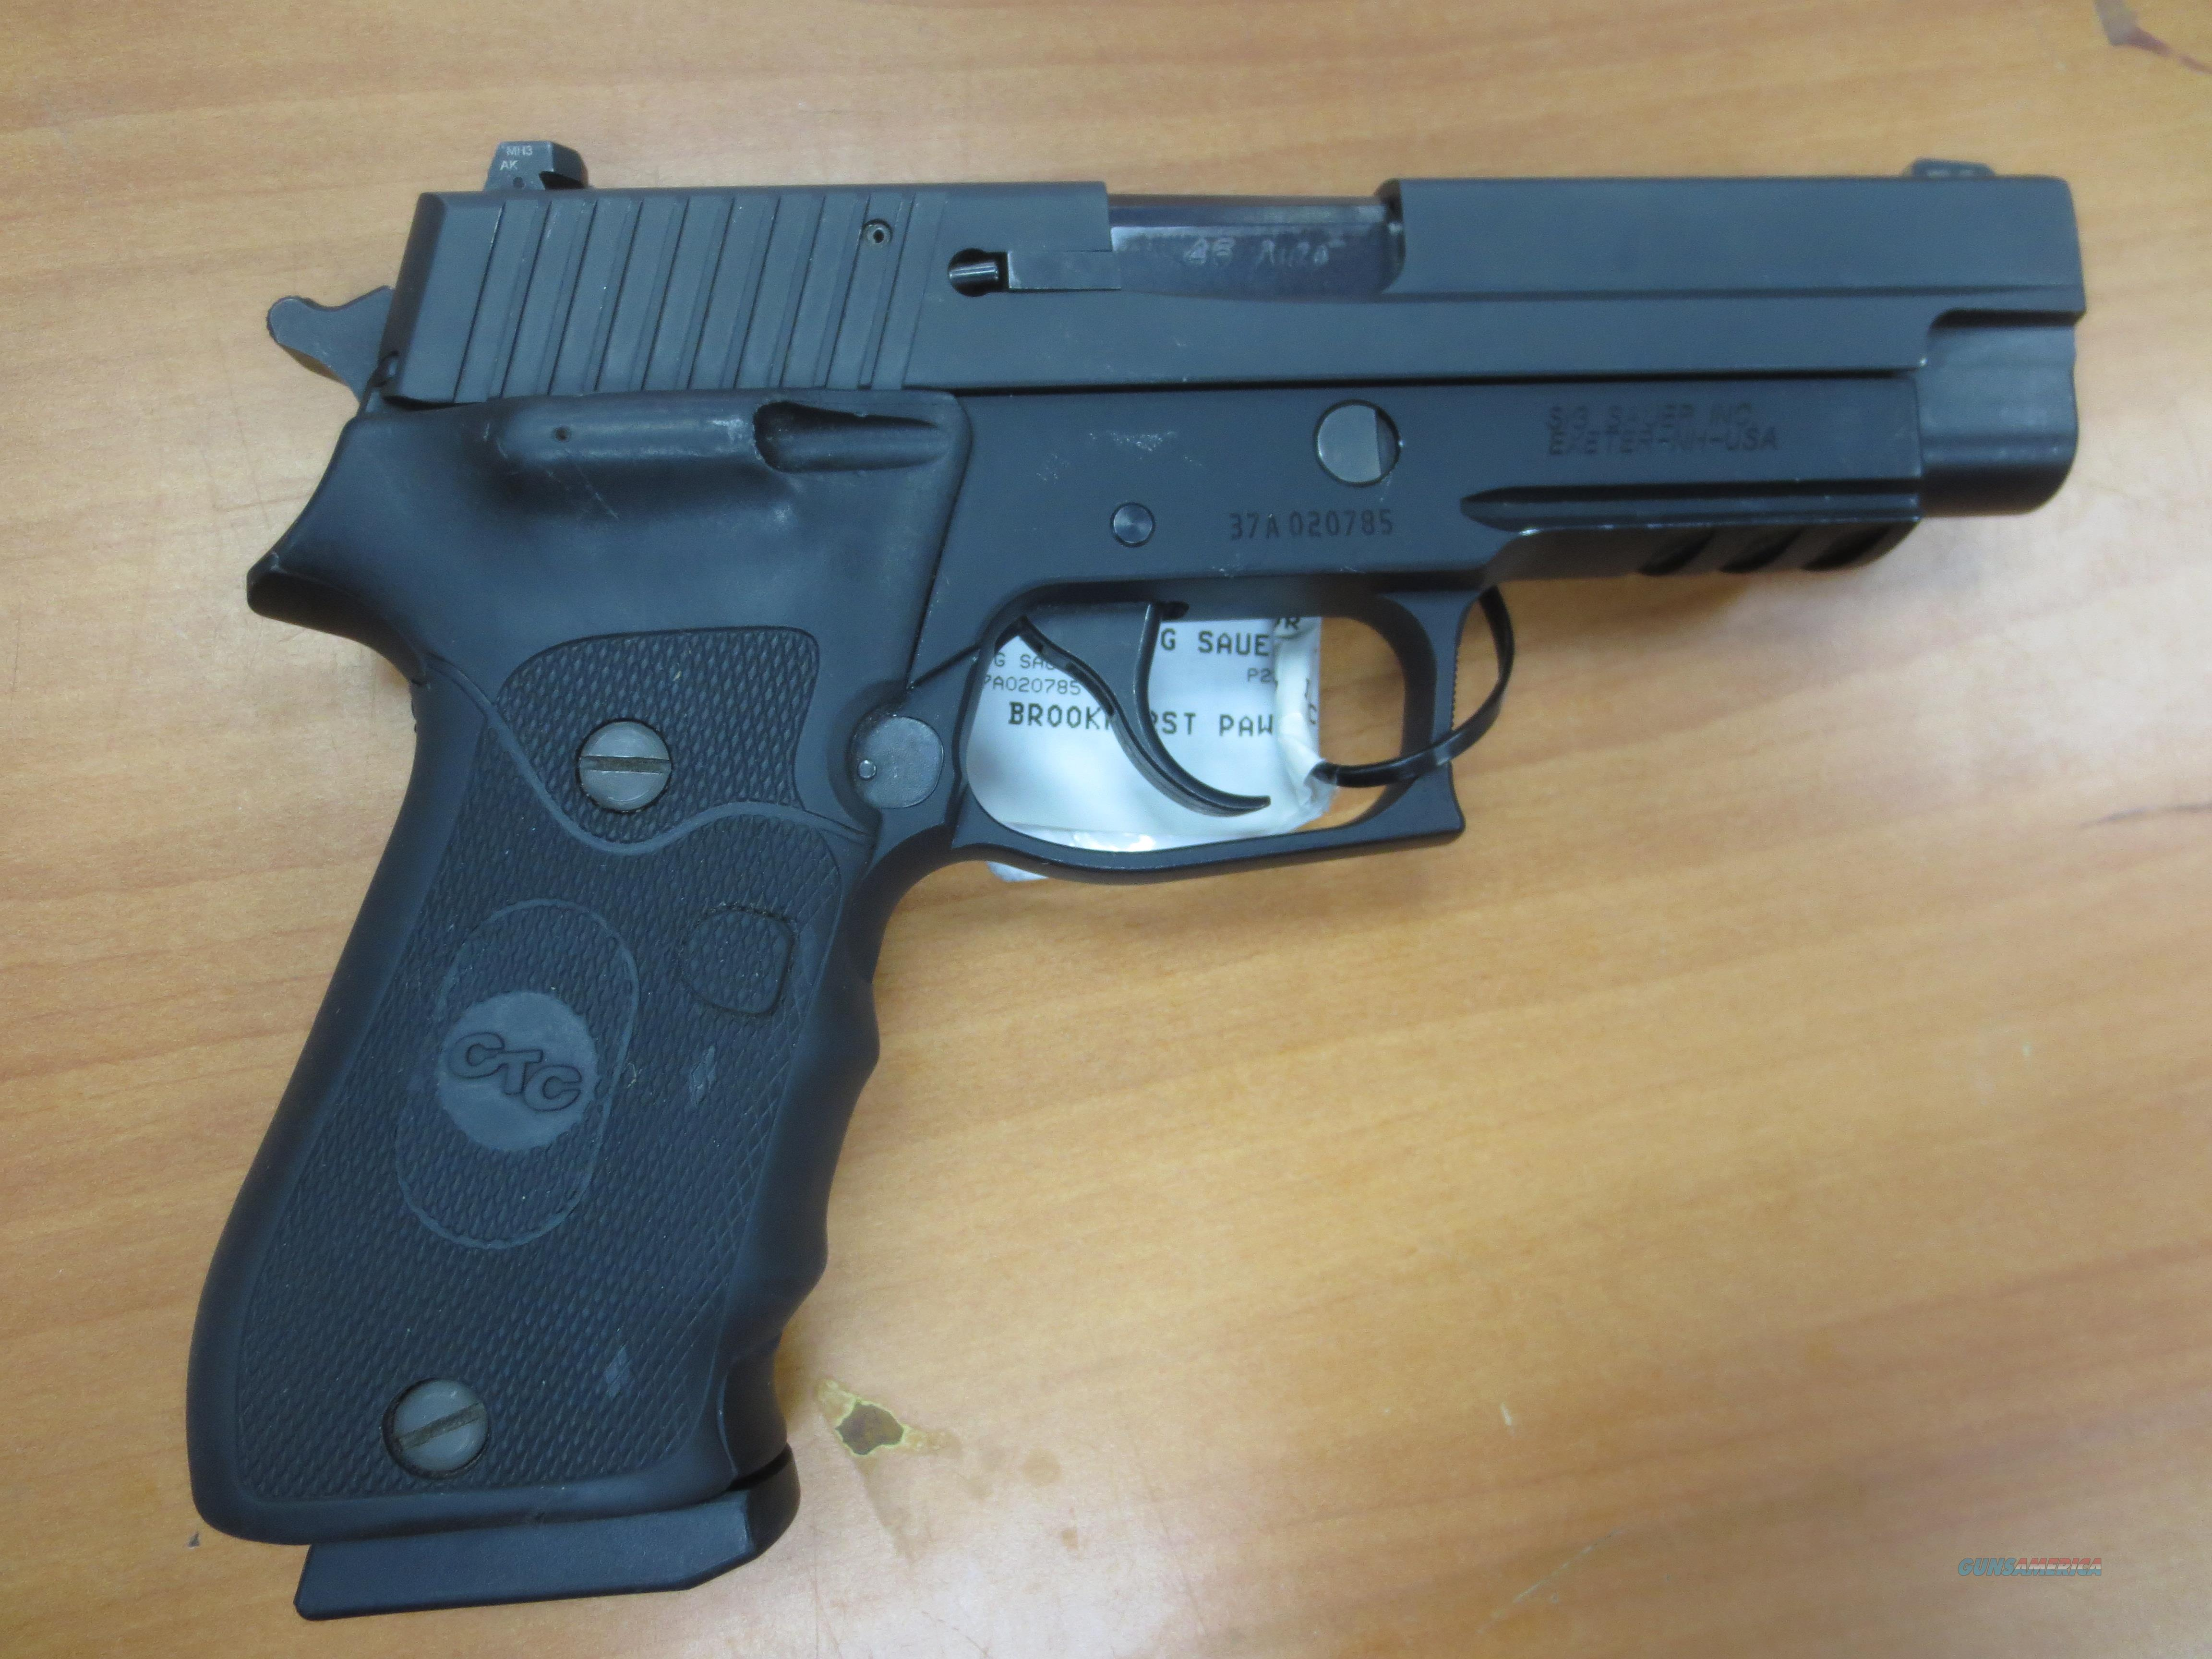 Sig Sauer P220 .45 Auto with CTC Laser grip  Guns > Pistols > Sig - Sauer/Sigarms Pistols > P220